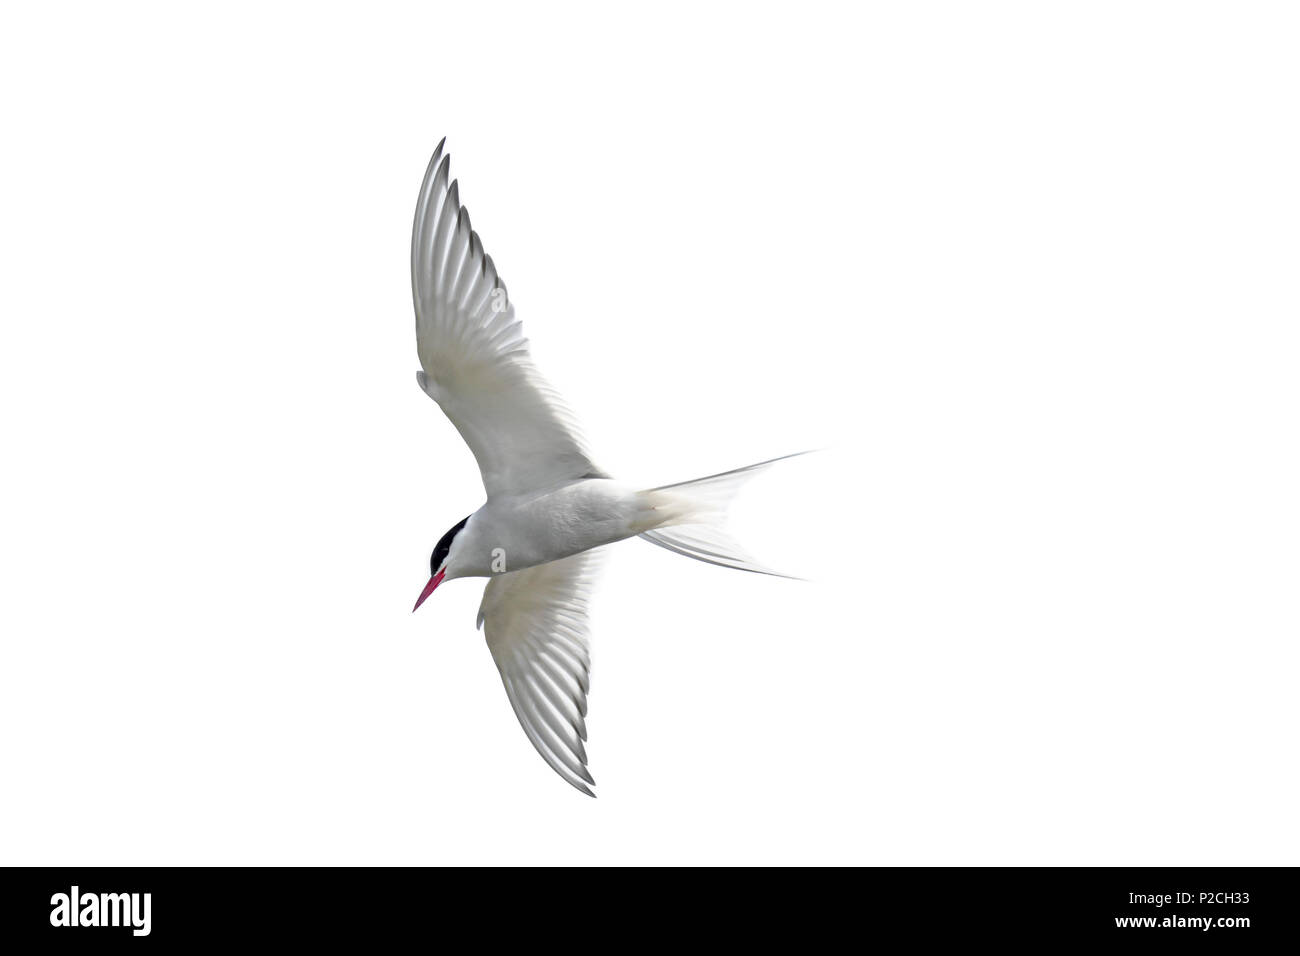 Arctic tern (Sterna paradisaea) in flight against white background, cutout / cut-out - Stock Image